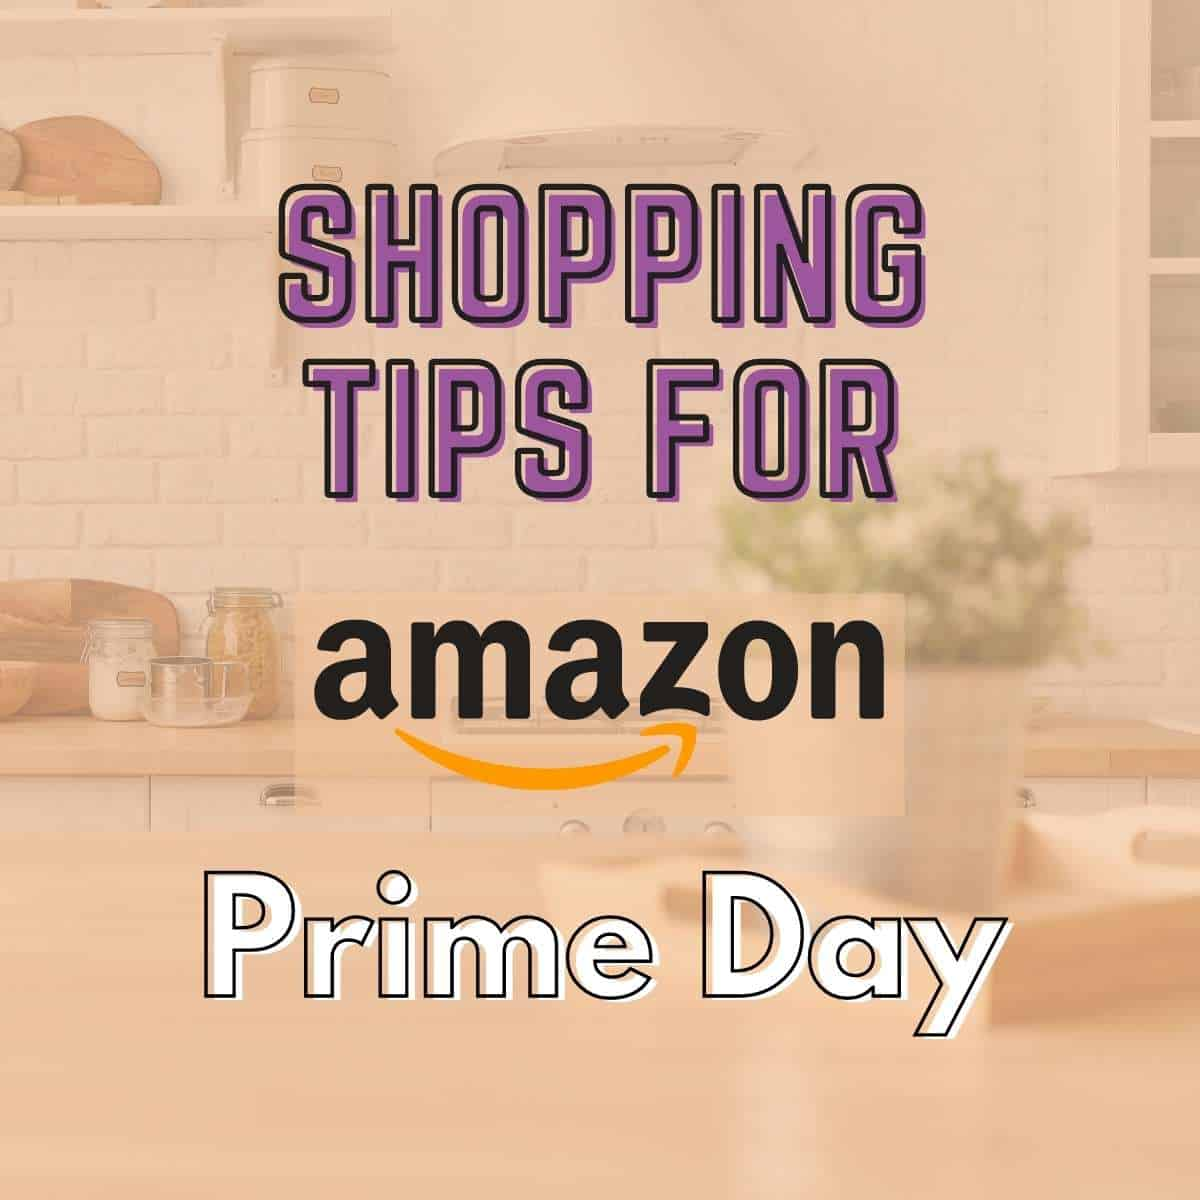 """a kitchen image with text overlay """"shopping tips for amazon prime day"""""""